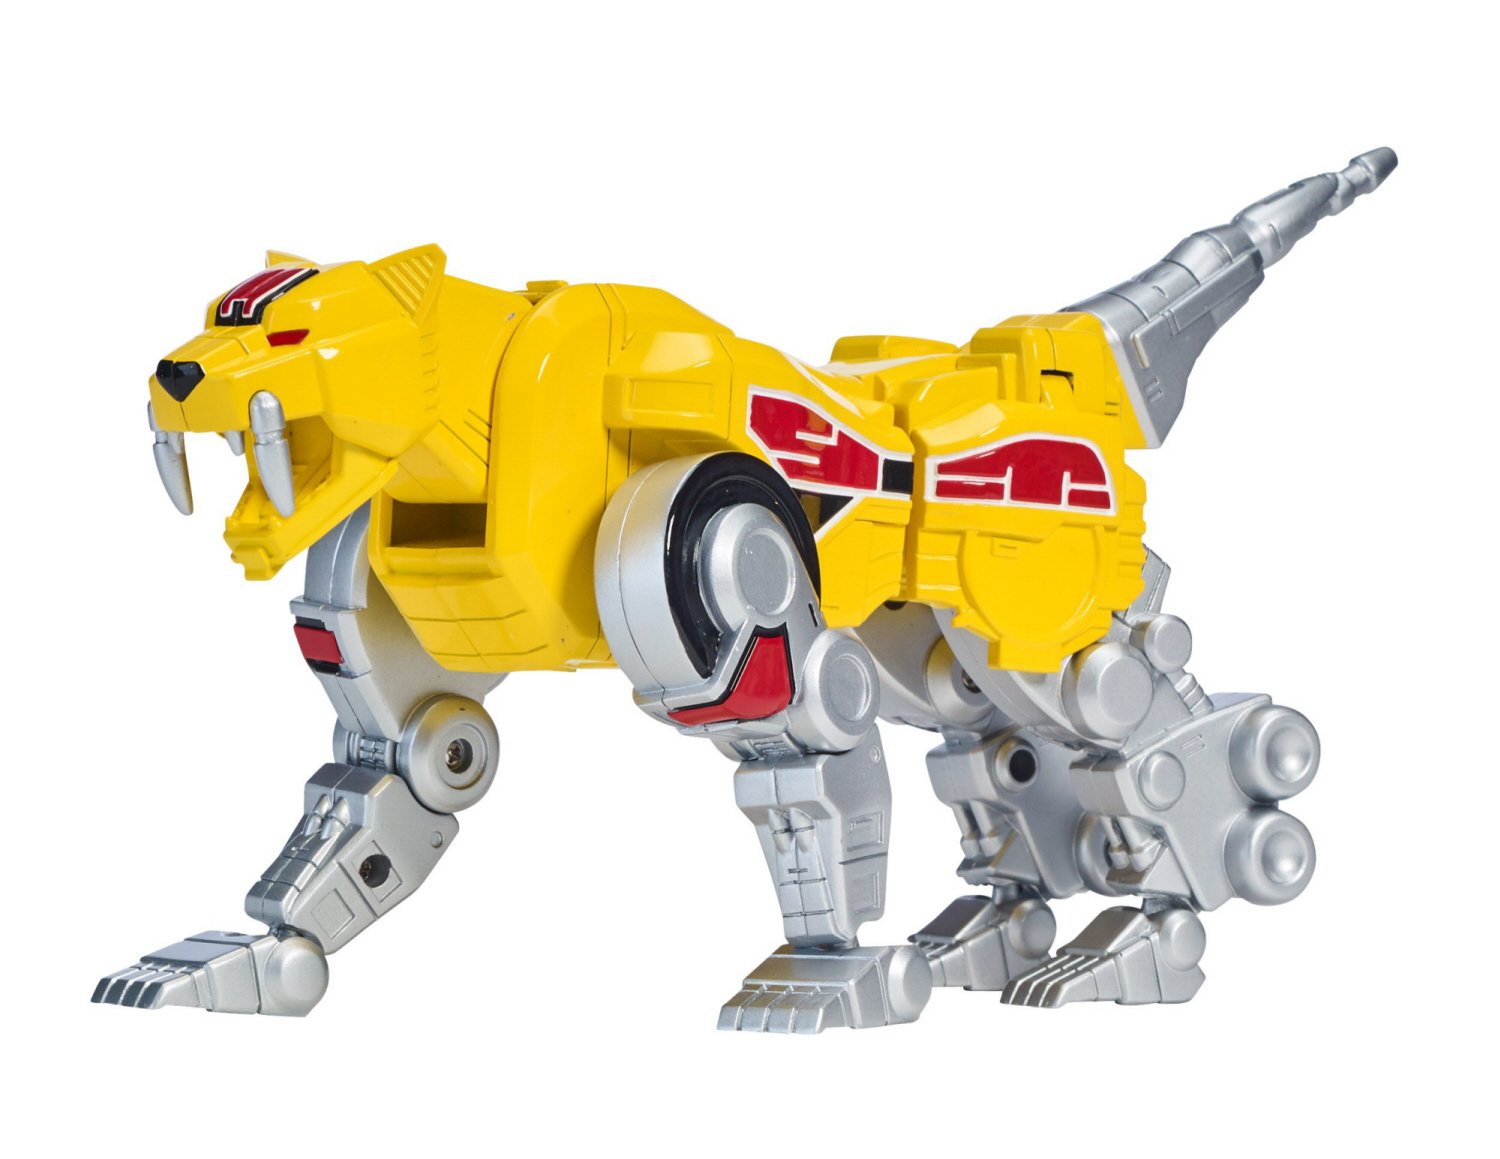 Sabretooth Tiger Zord Bandai Bandai America Incorporated 40306 Power Rangers Mighty Morphin Sabertooth Tiger Zord Action Figure